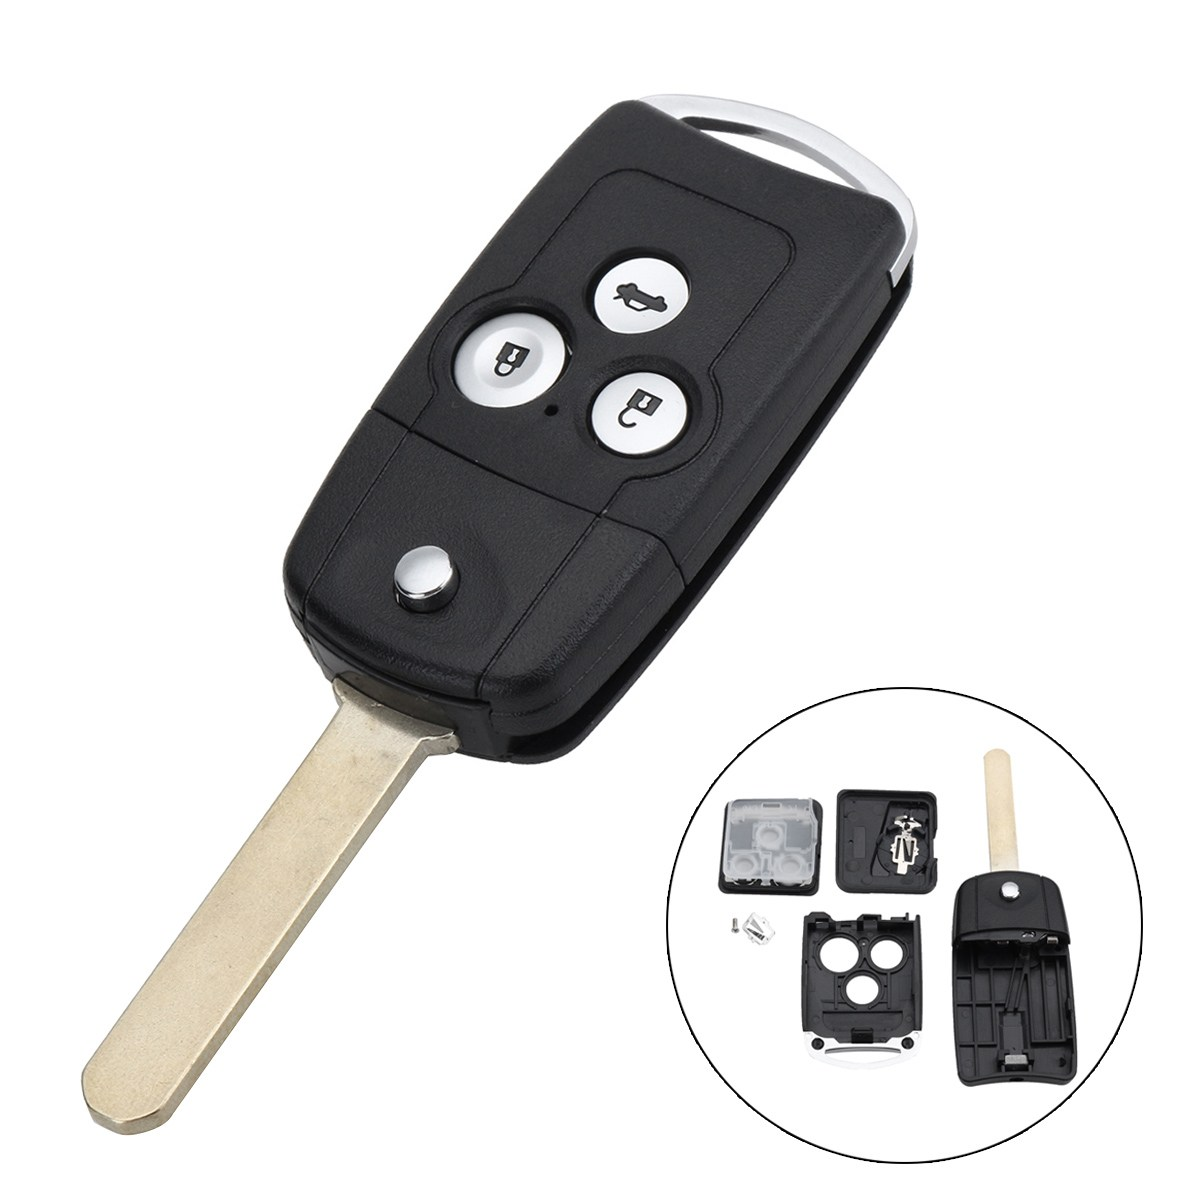 3 Buttons Car <font><b>Remote</b></font> Flip <font><b>Key</b></font> Fob Case Shell Upgrade For <font><b>Honda</b></font> for Civic for Accord <font><b>Jazz</b></font> CRV image